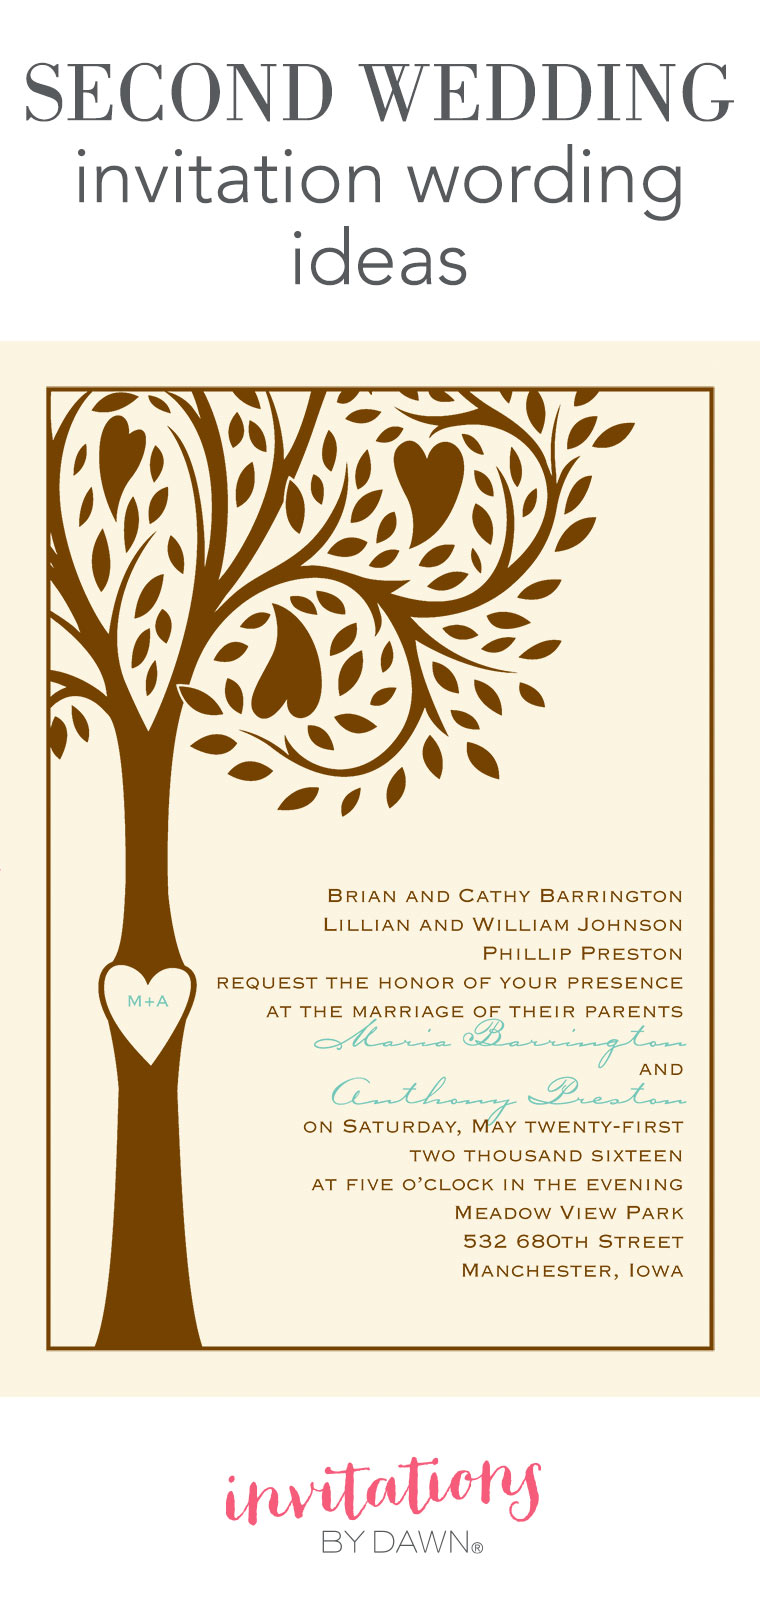 Second wedding invitation wording invitations by dawn second wedding invitation wording stopboris Images